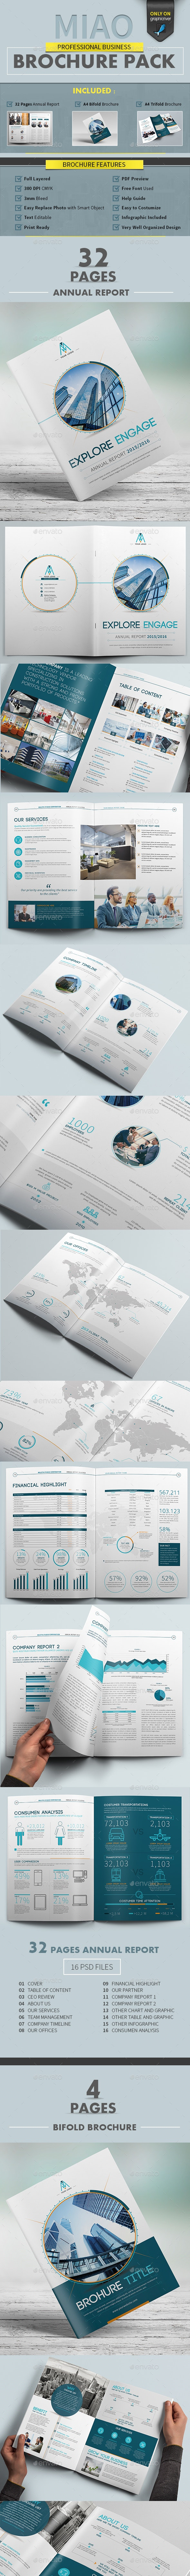 Annual Report - MIAO - Professional Business Brochure Pack - Corporate Brochures